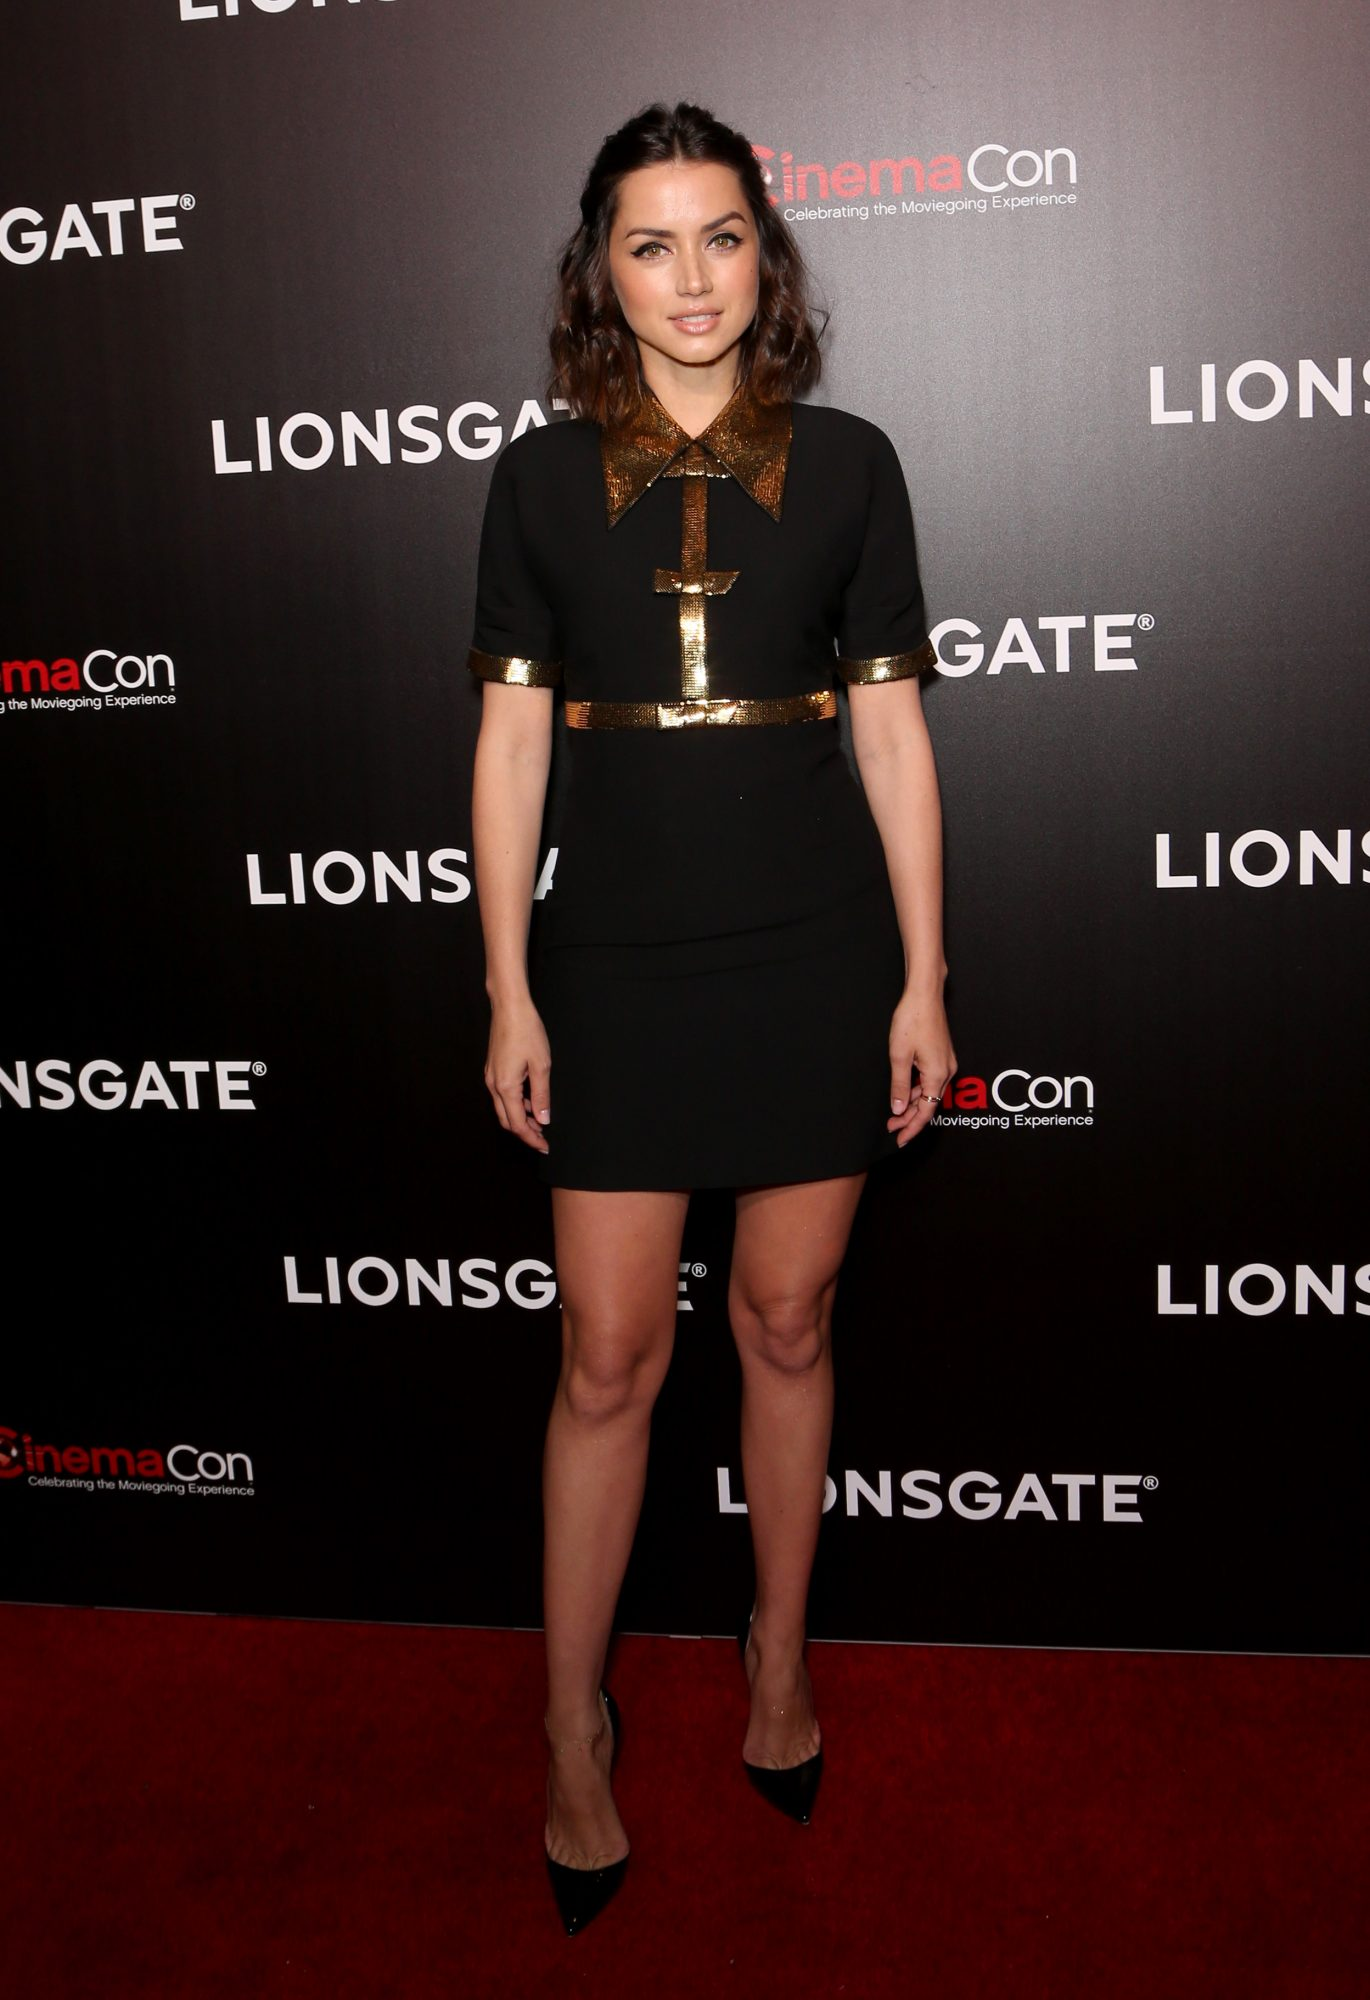 2019 CinemaCon - Lionsgate Presentation